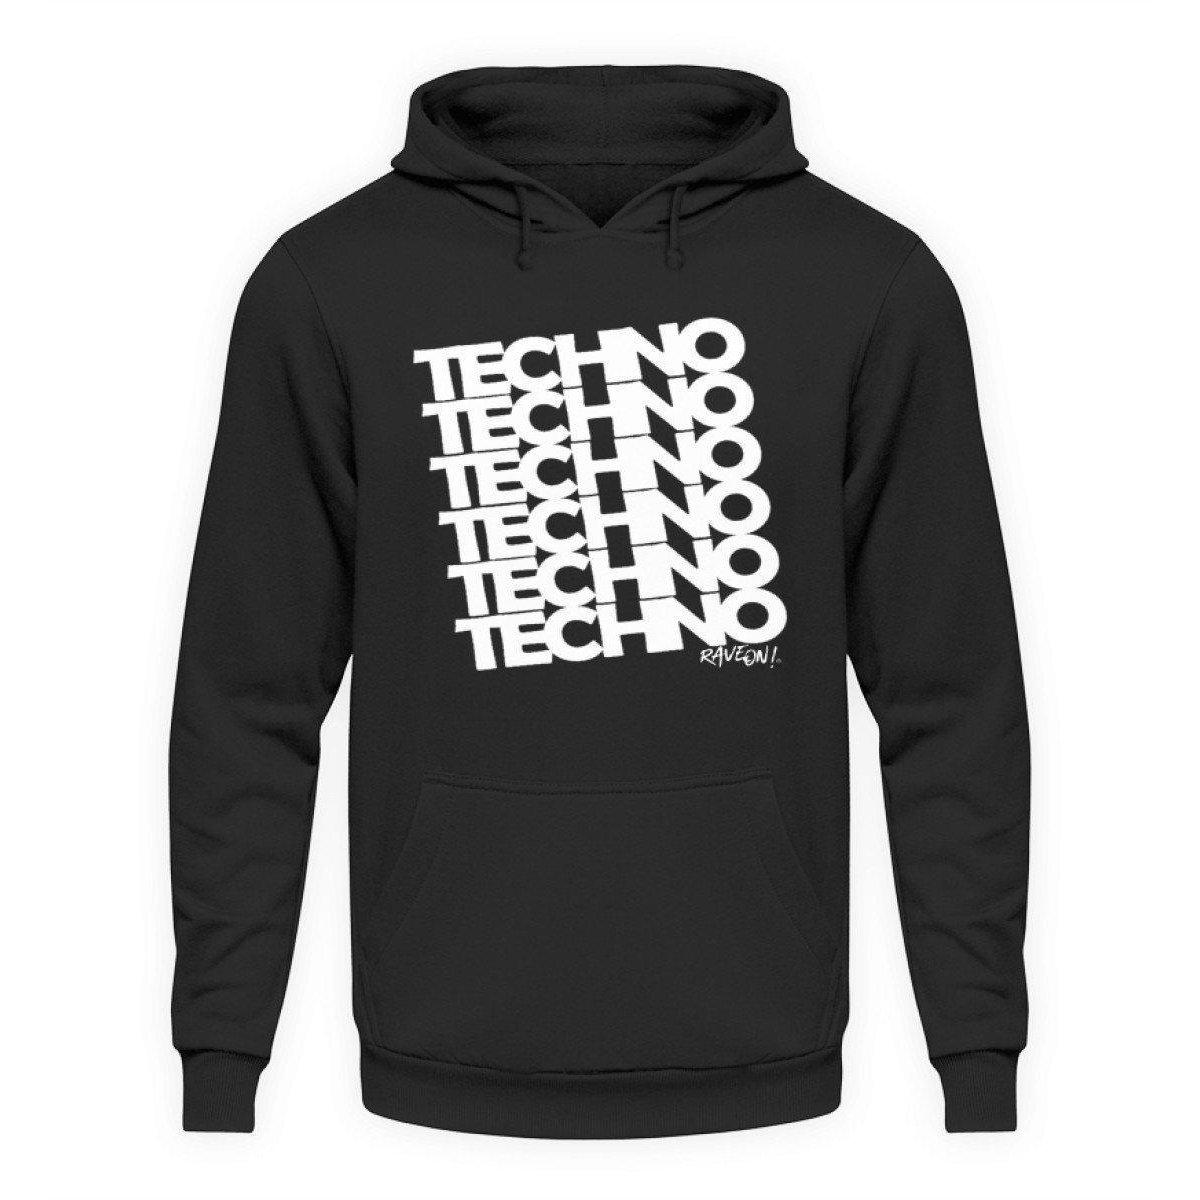 TECHNO 6 Rave ON!® - Unisex Kapuzenpullover Hoodie Unisex Hoodie Jet Schwarz / L - Rave On!® der Club & Techno Szene Shop für Coole Junge Mode Streetwear Style & Fashion Outfits + Sexy Festival 420 Stuff